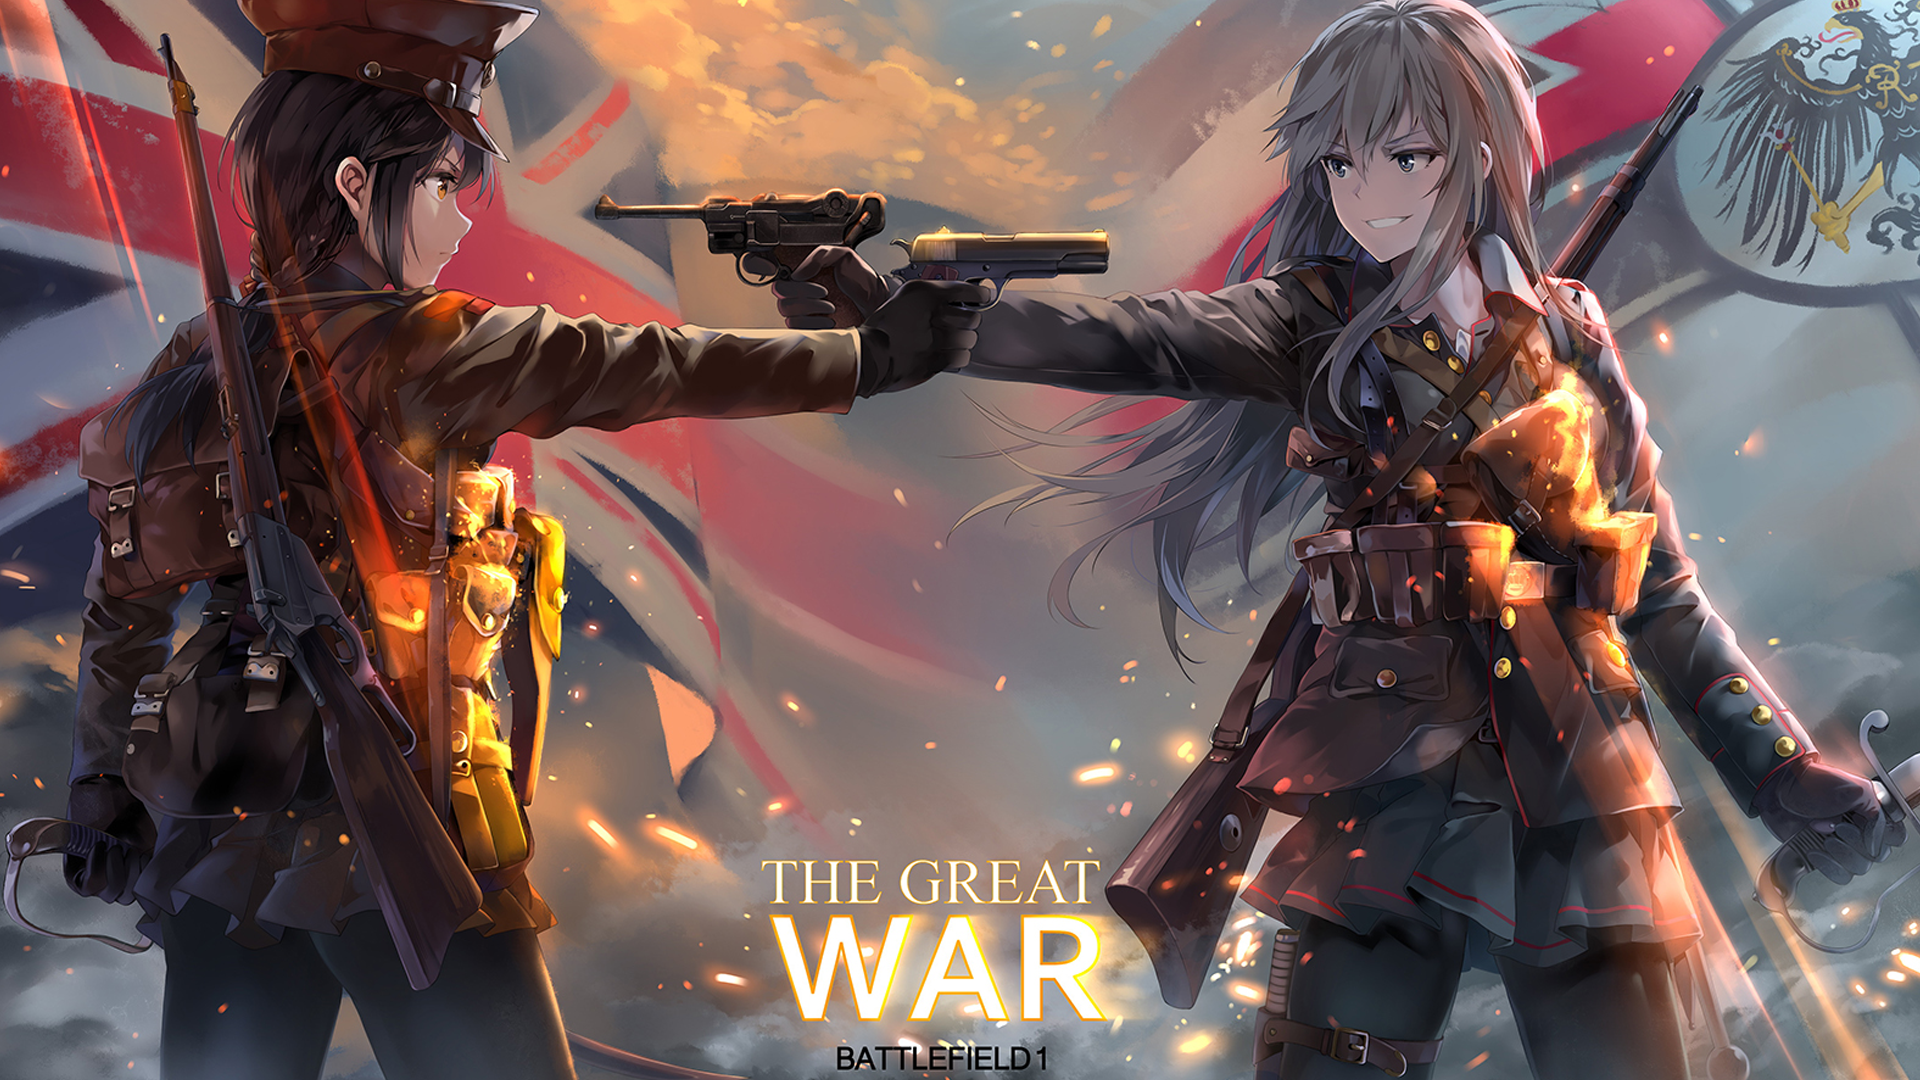 The Great War (1920x1080) HD Wallpaper From Gallsource.com | BC2